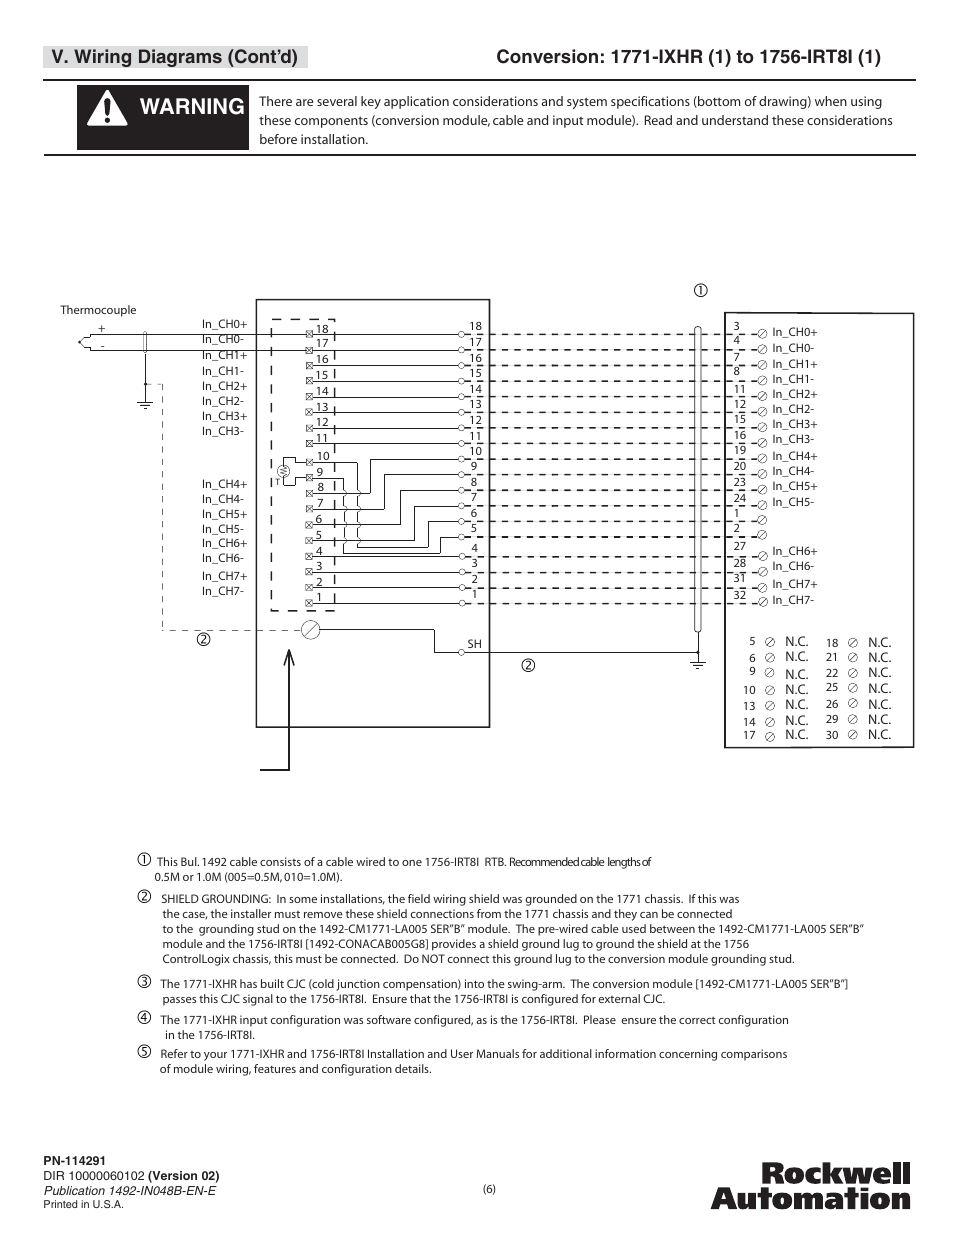 Warning, V. wiring diagrams (cont'd) | Rockwell Automation 1492-